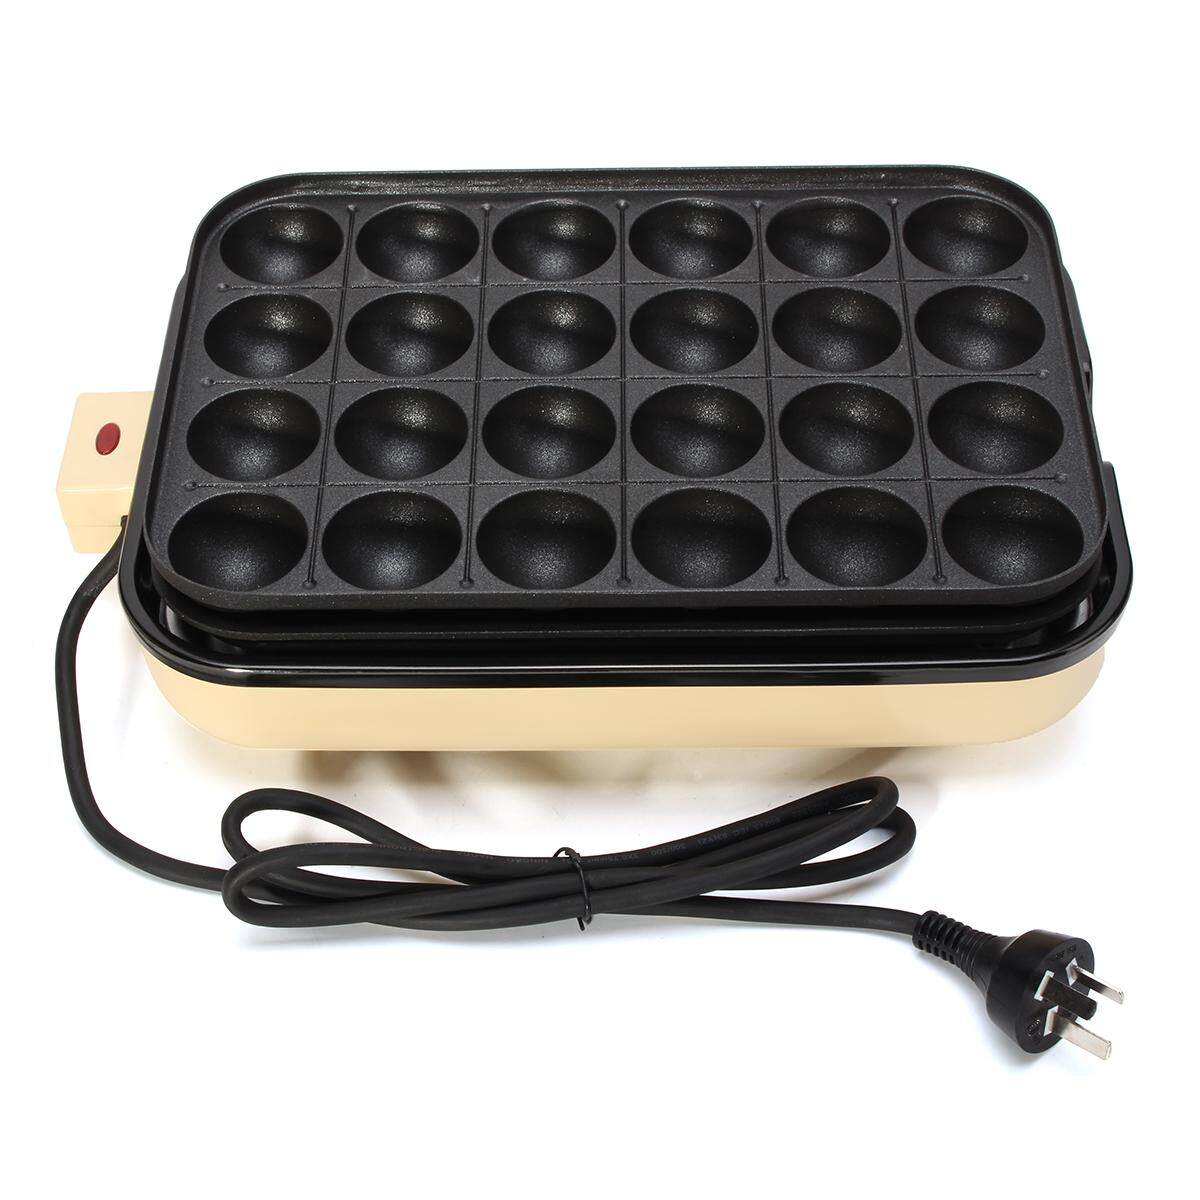 24 Holes Takoyaki Grill Pan Plate Cooking Baking Mold Octopus Ball Maker Kitchen By Glimmer.